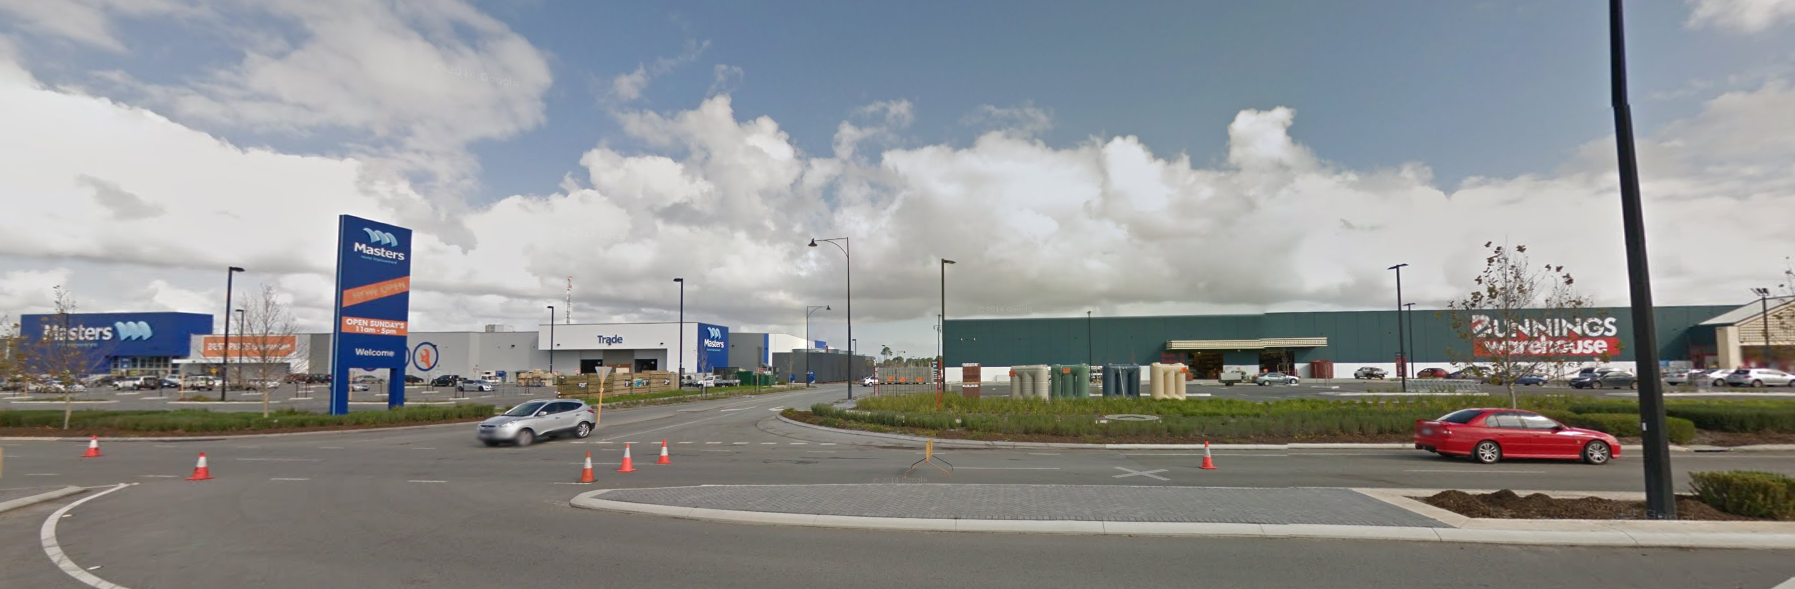 bunnings and masters next to each other